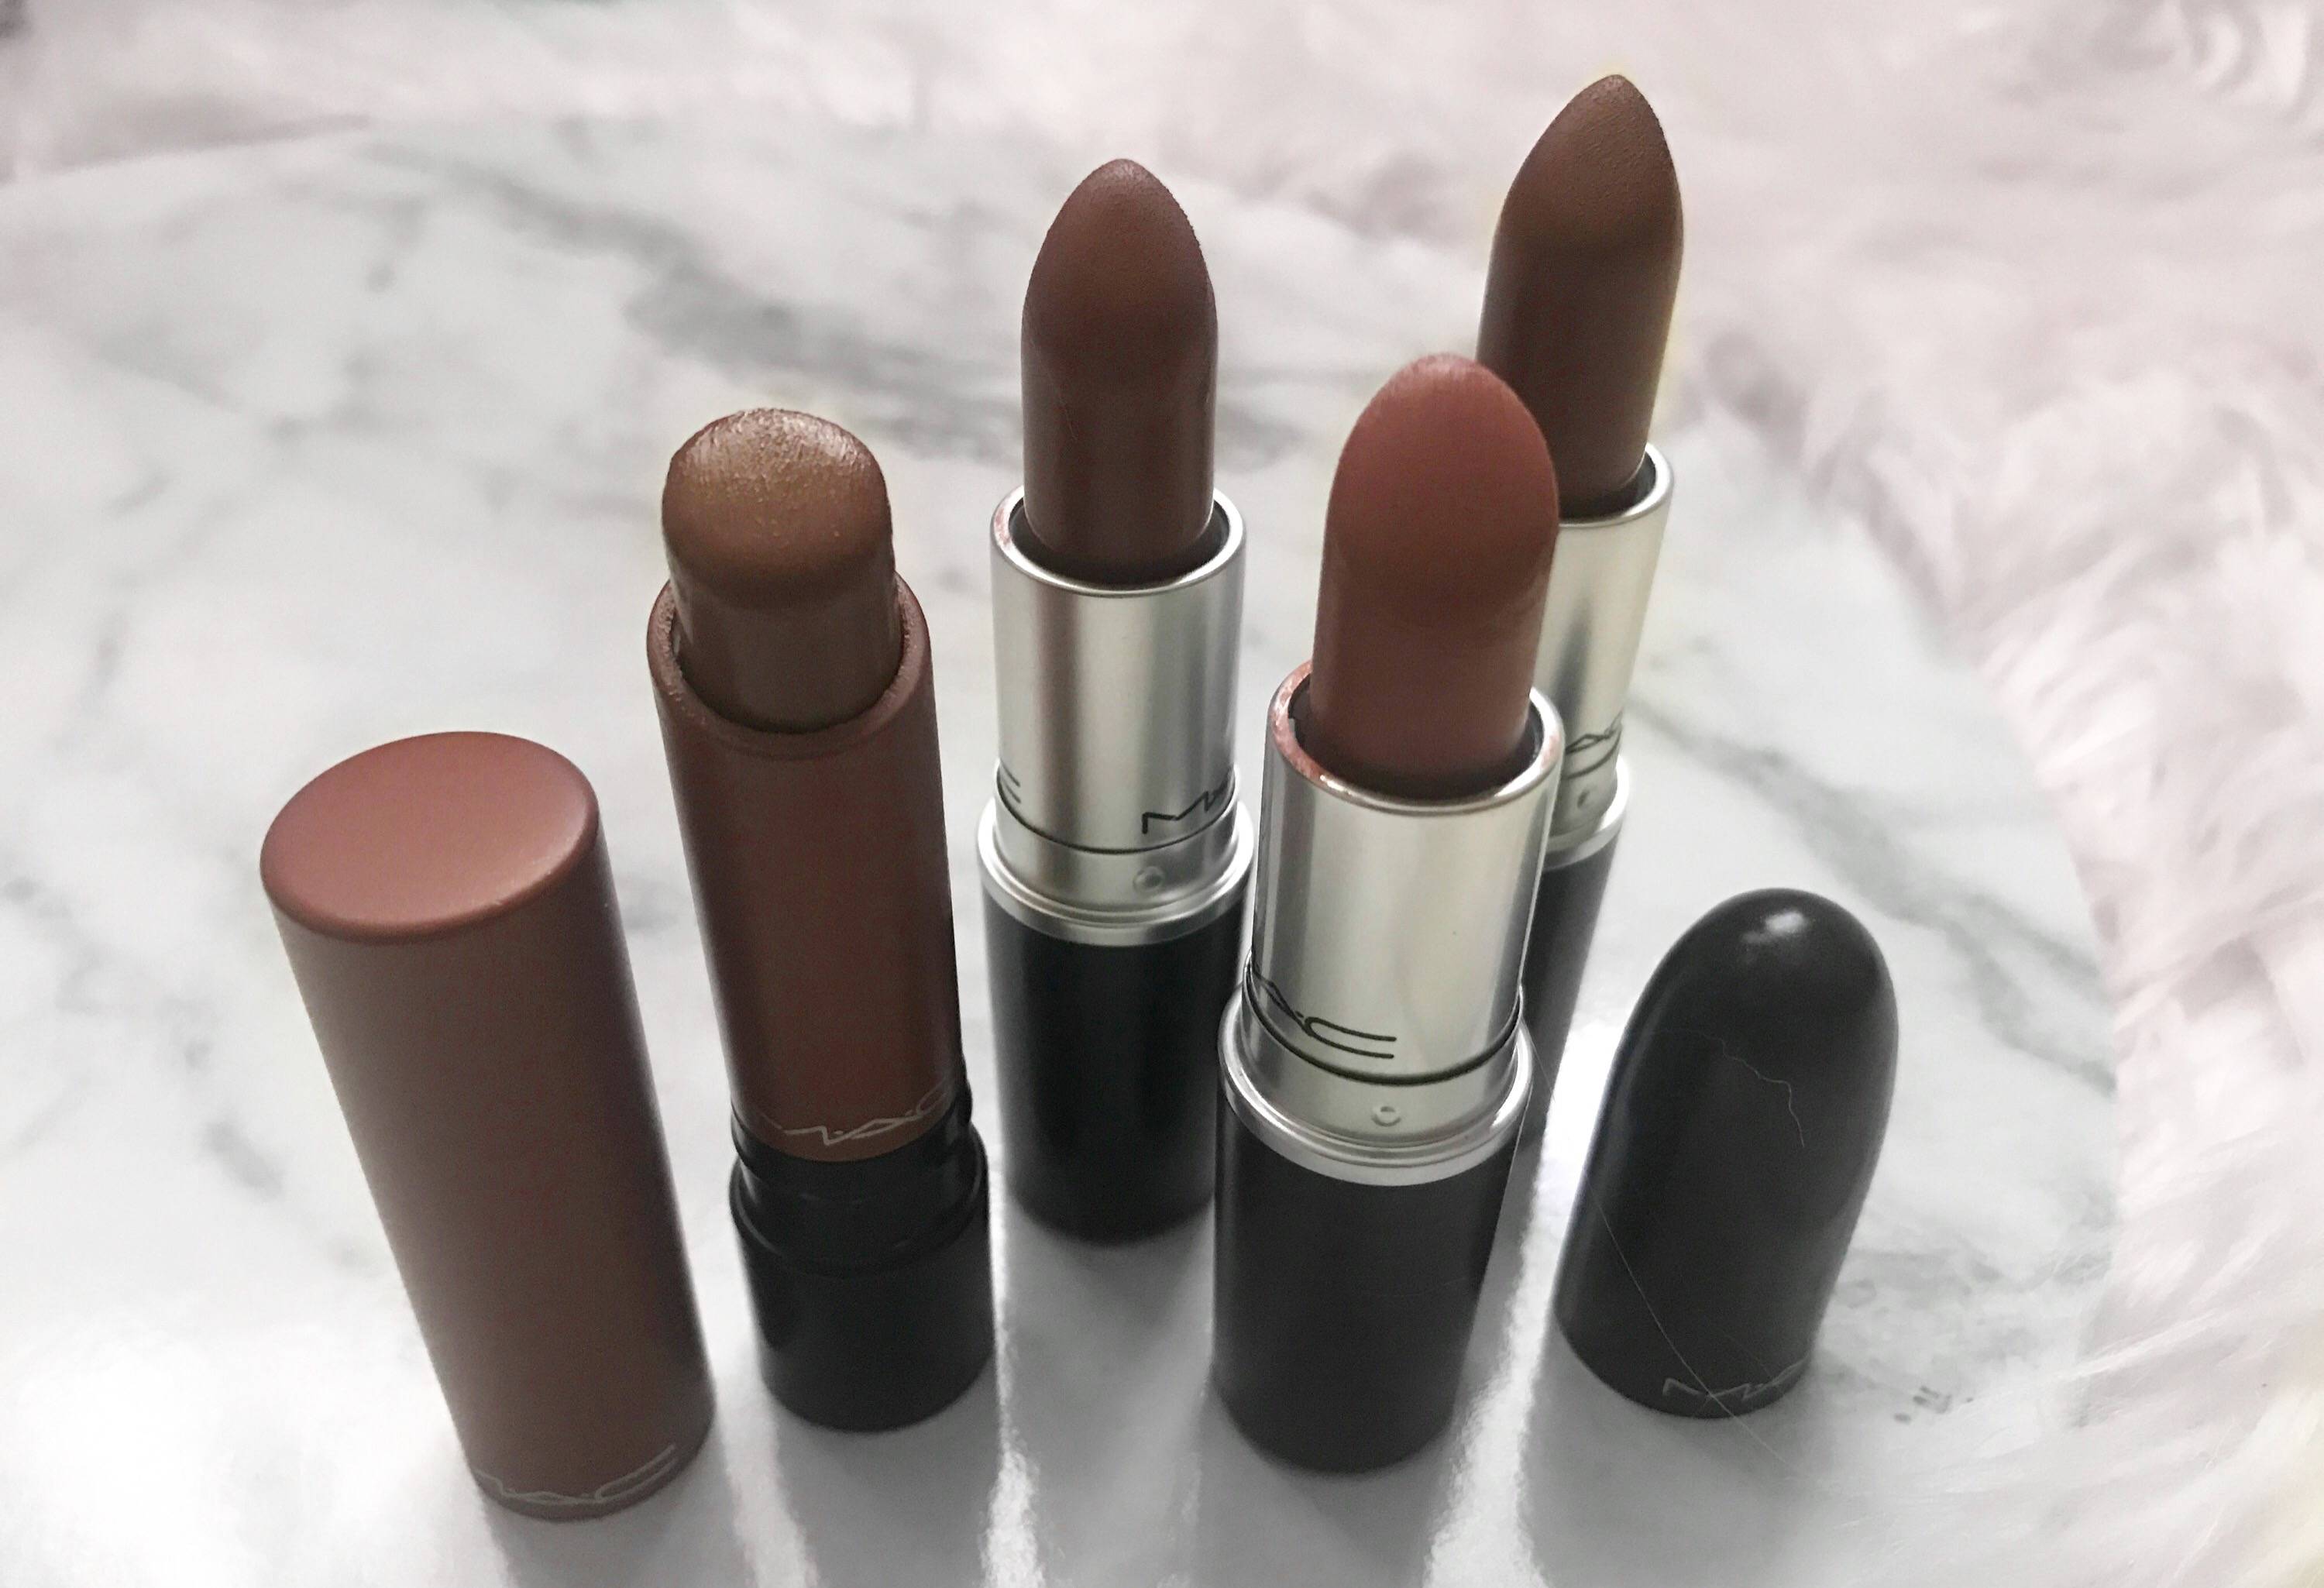 Mac Top Nude Lipsticks  Browndarker Complexion-9515